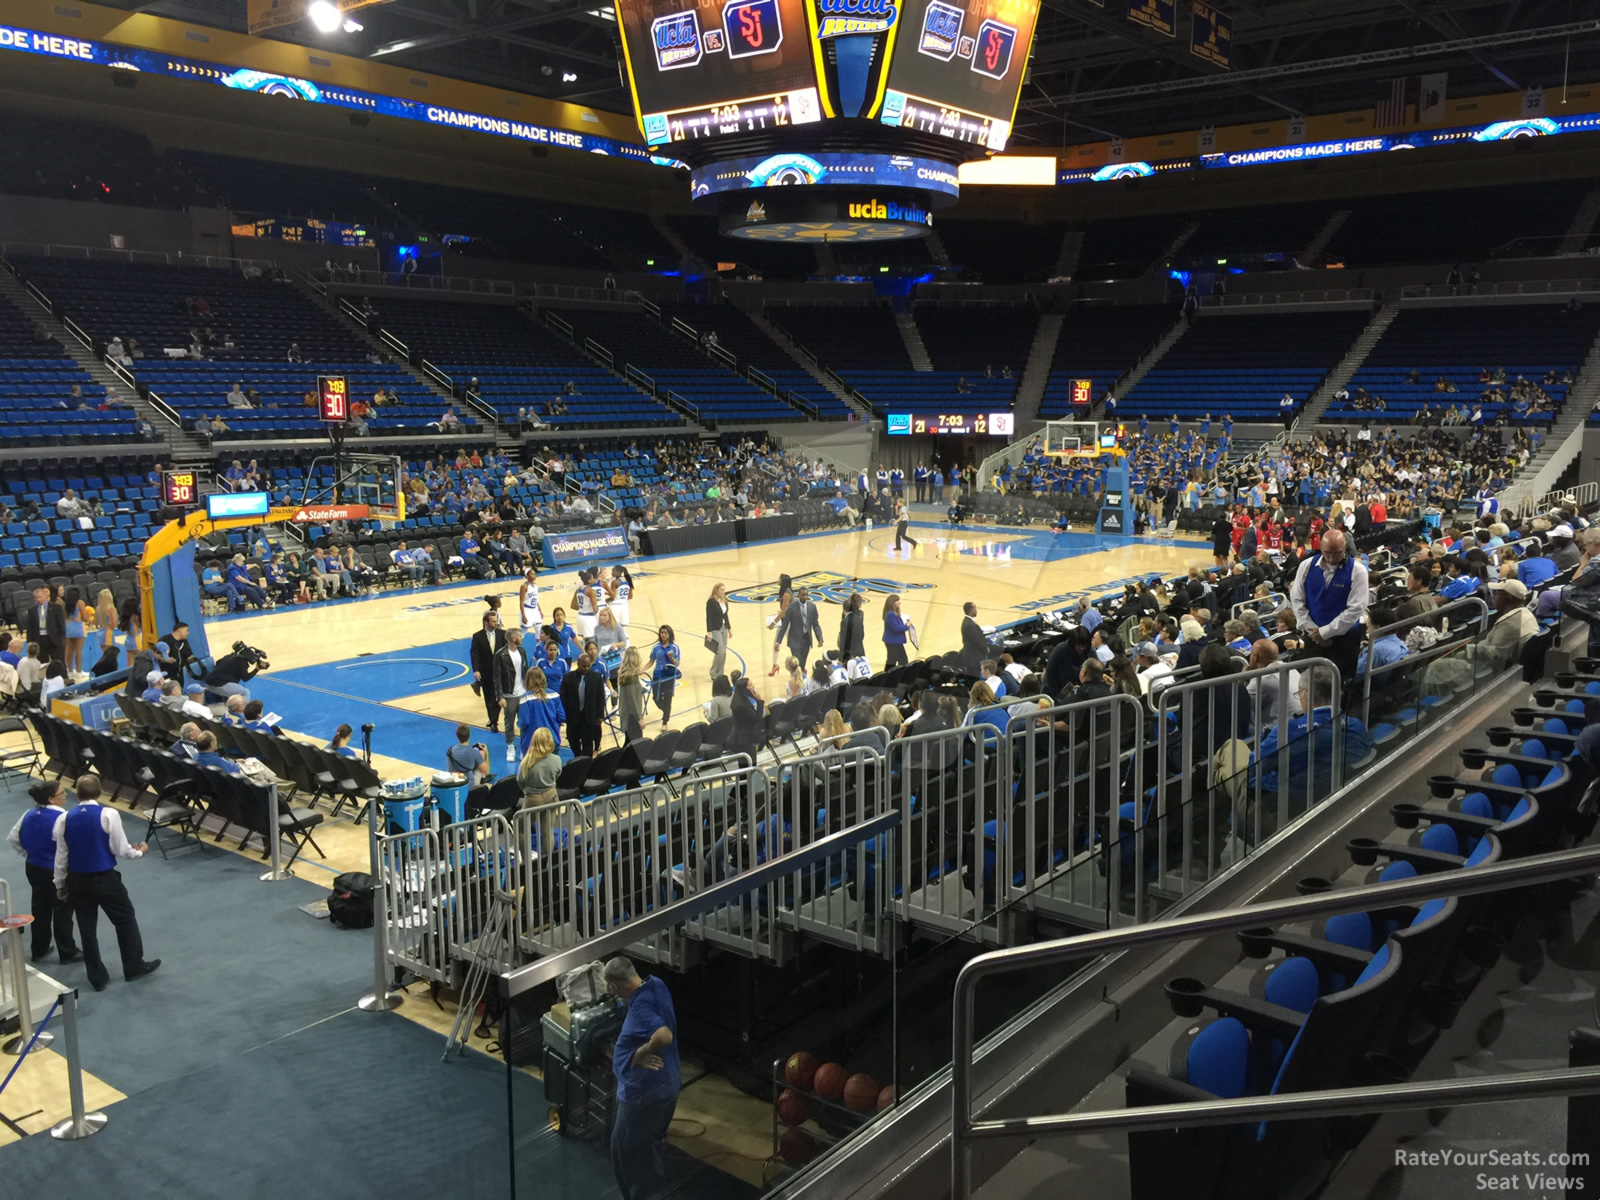 Seat View for Pauley Pavilion Section 105, Row 3